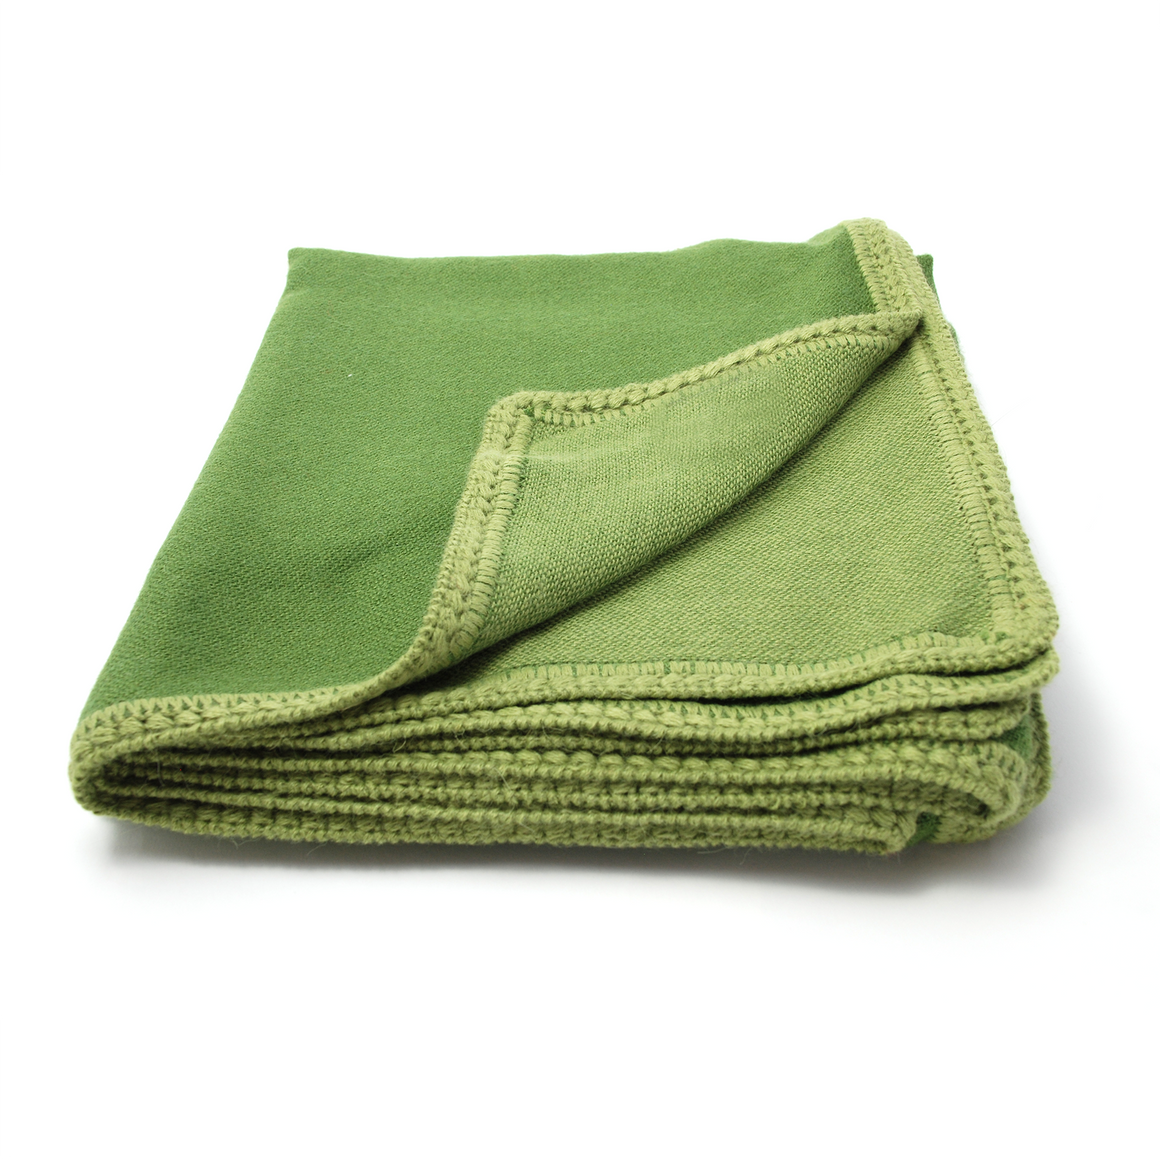 Green reversible alpaca throw